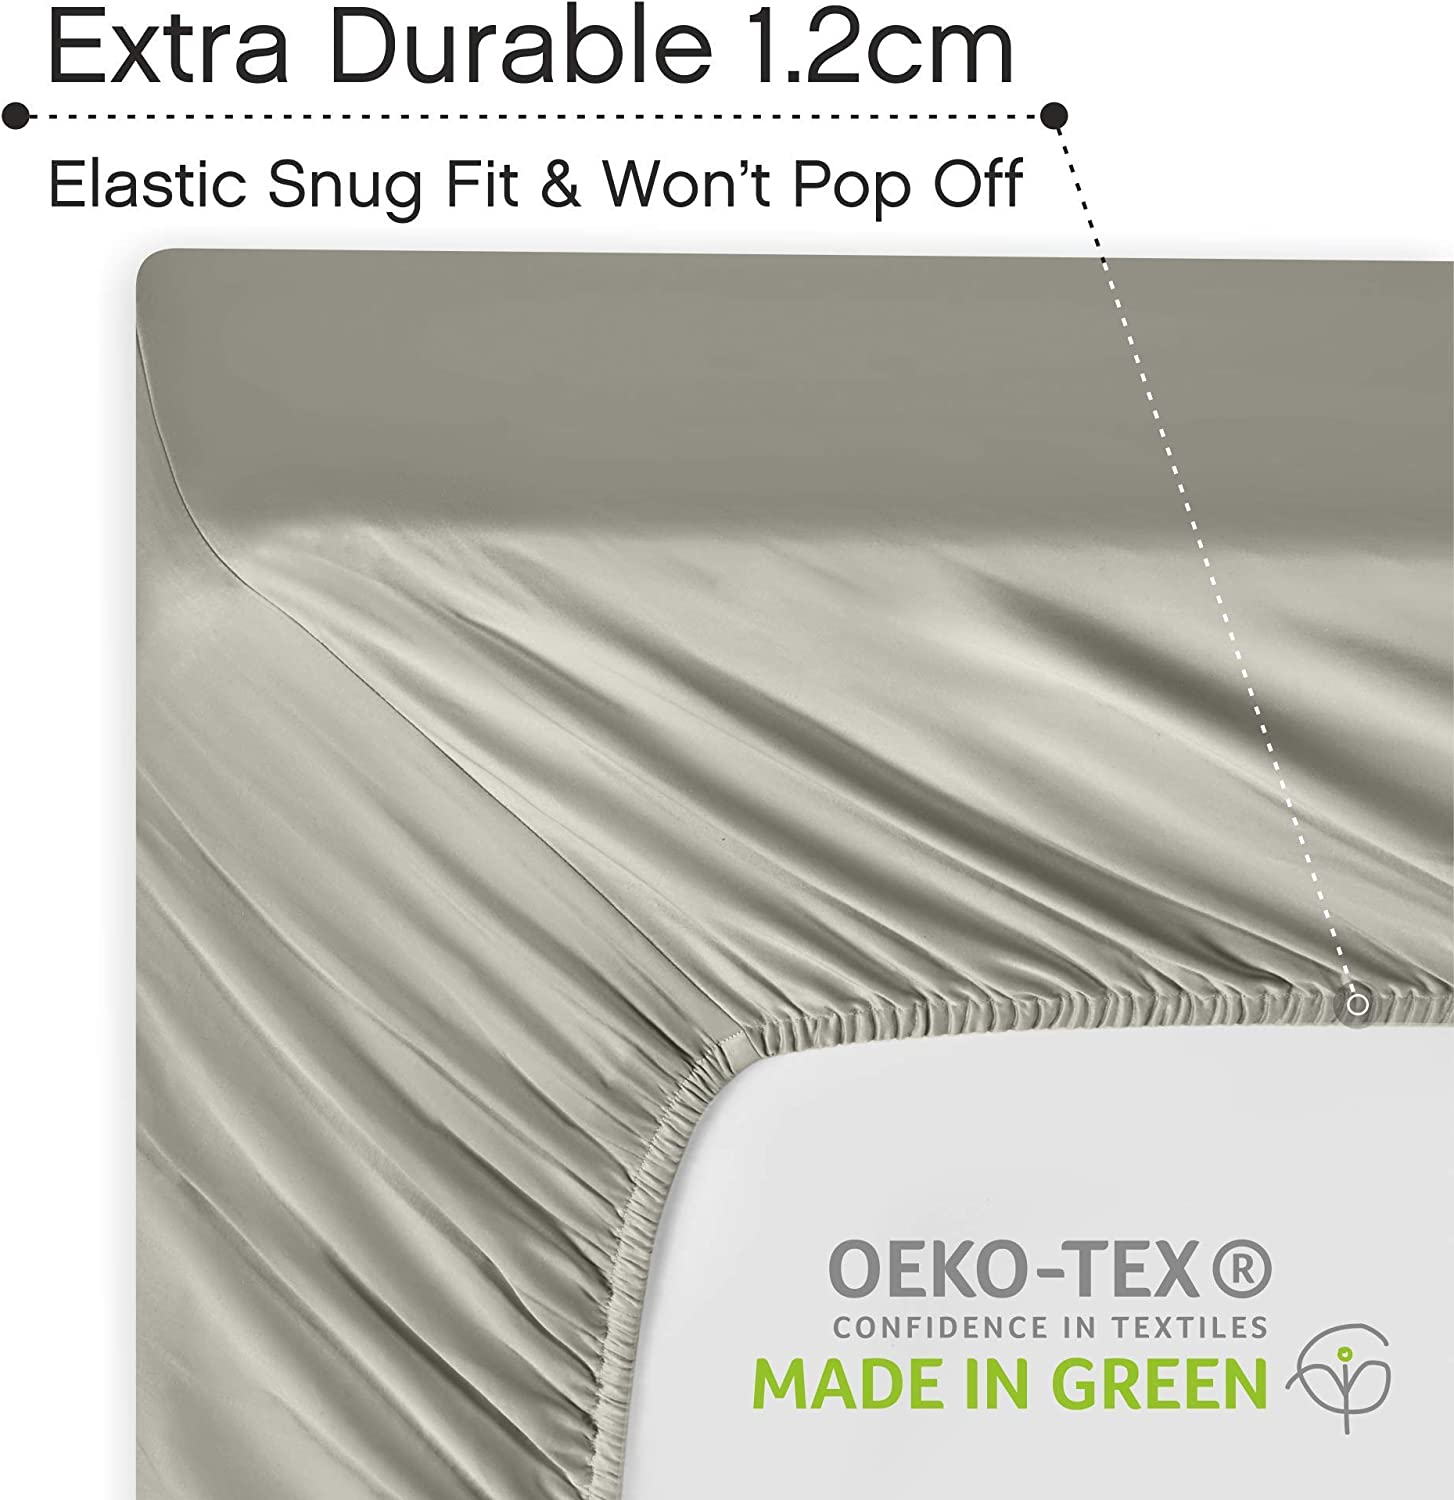 Elasticized Deep Pocket Fits Low Profile Foam and Tall Mattresses UMI Ivory Colour 400 TC Fitted Sheet 100/% Cotton Double Bed Sheet